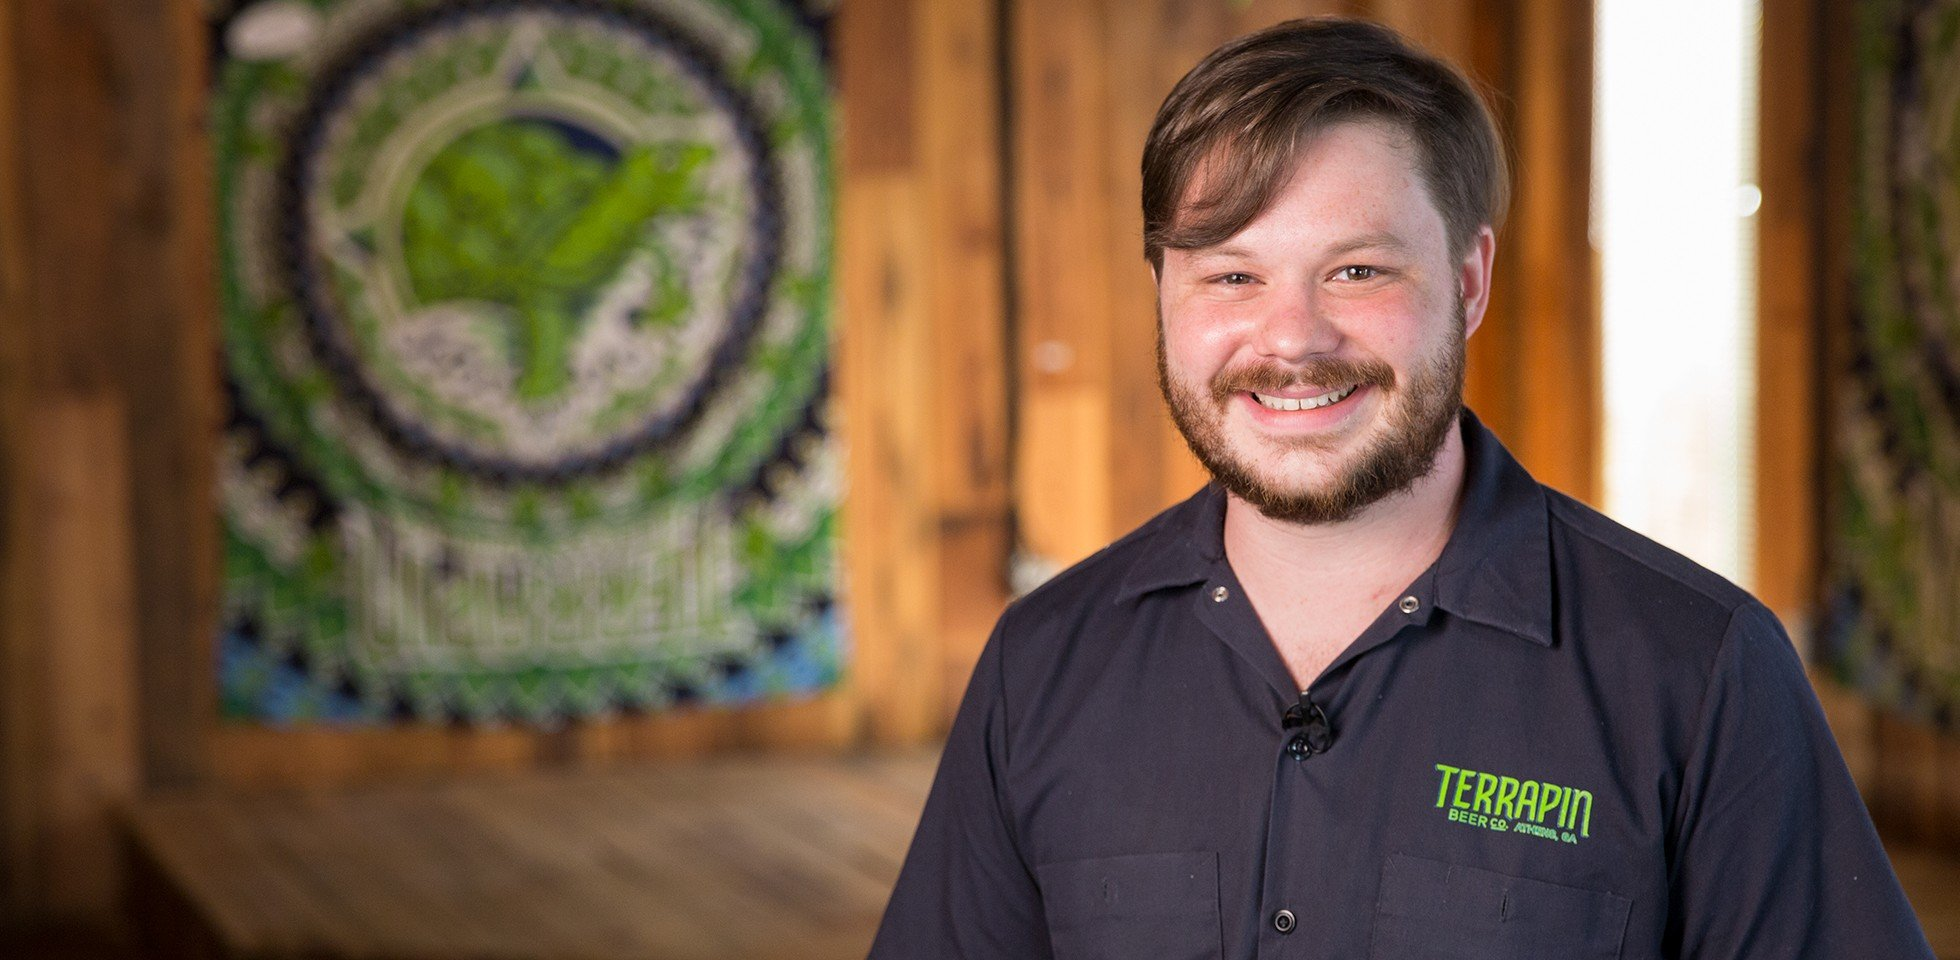 Clay Robinson, Packaging Shift Supervisor - Terrapin Beer Careers